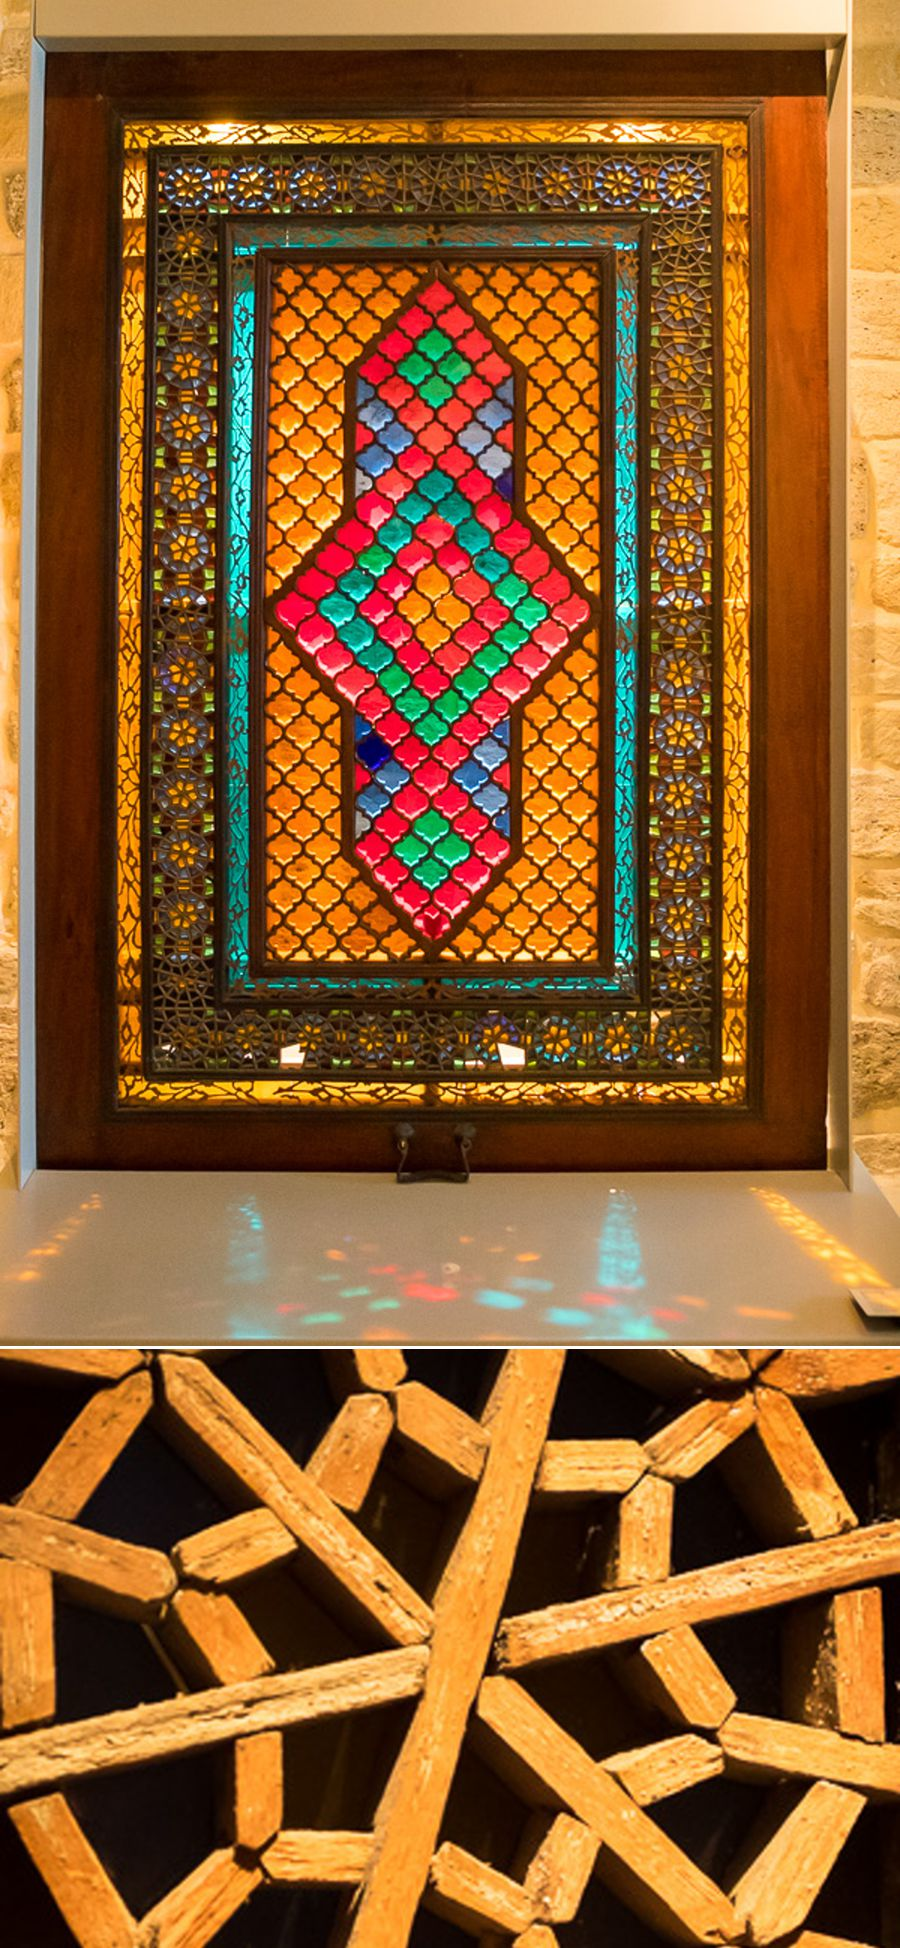 stained-glass window from Sheki - Baku - Azerbaijan